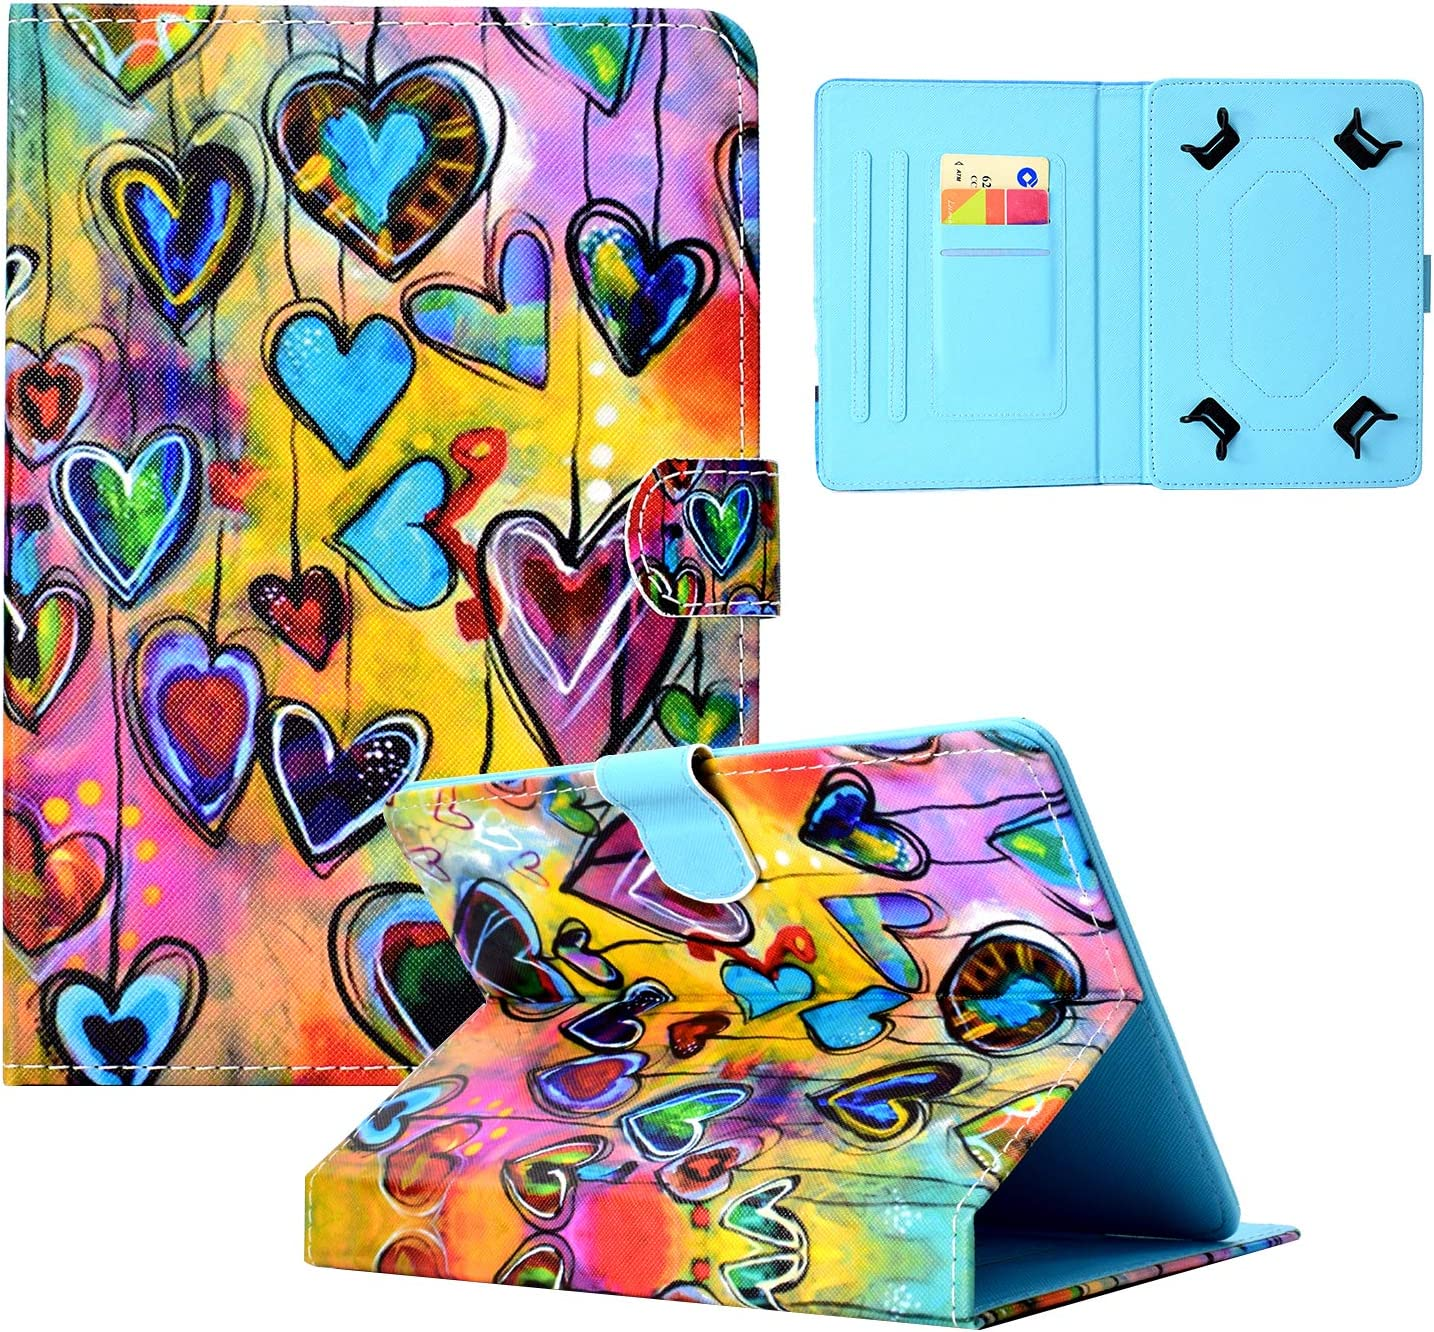 Dteck Slim Lightweight Wallet Stand Cute Flip Case for Samsung Galaxy Tab T307/Lenovo/Onn/Huawei/Dragon Touch/MatrixPad/LG G Pad/Google Nexus/Android Tablet 8 8.0 8.1 8.3 8.4 8.9 Inch (Love Hearts)